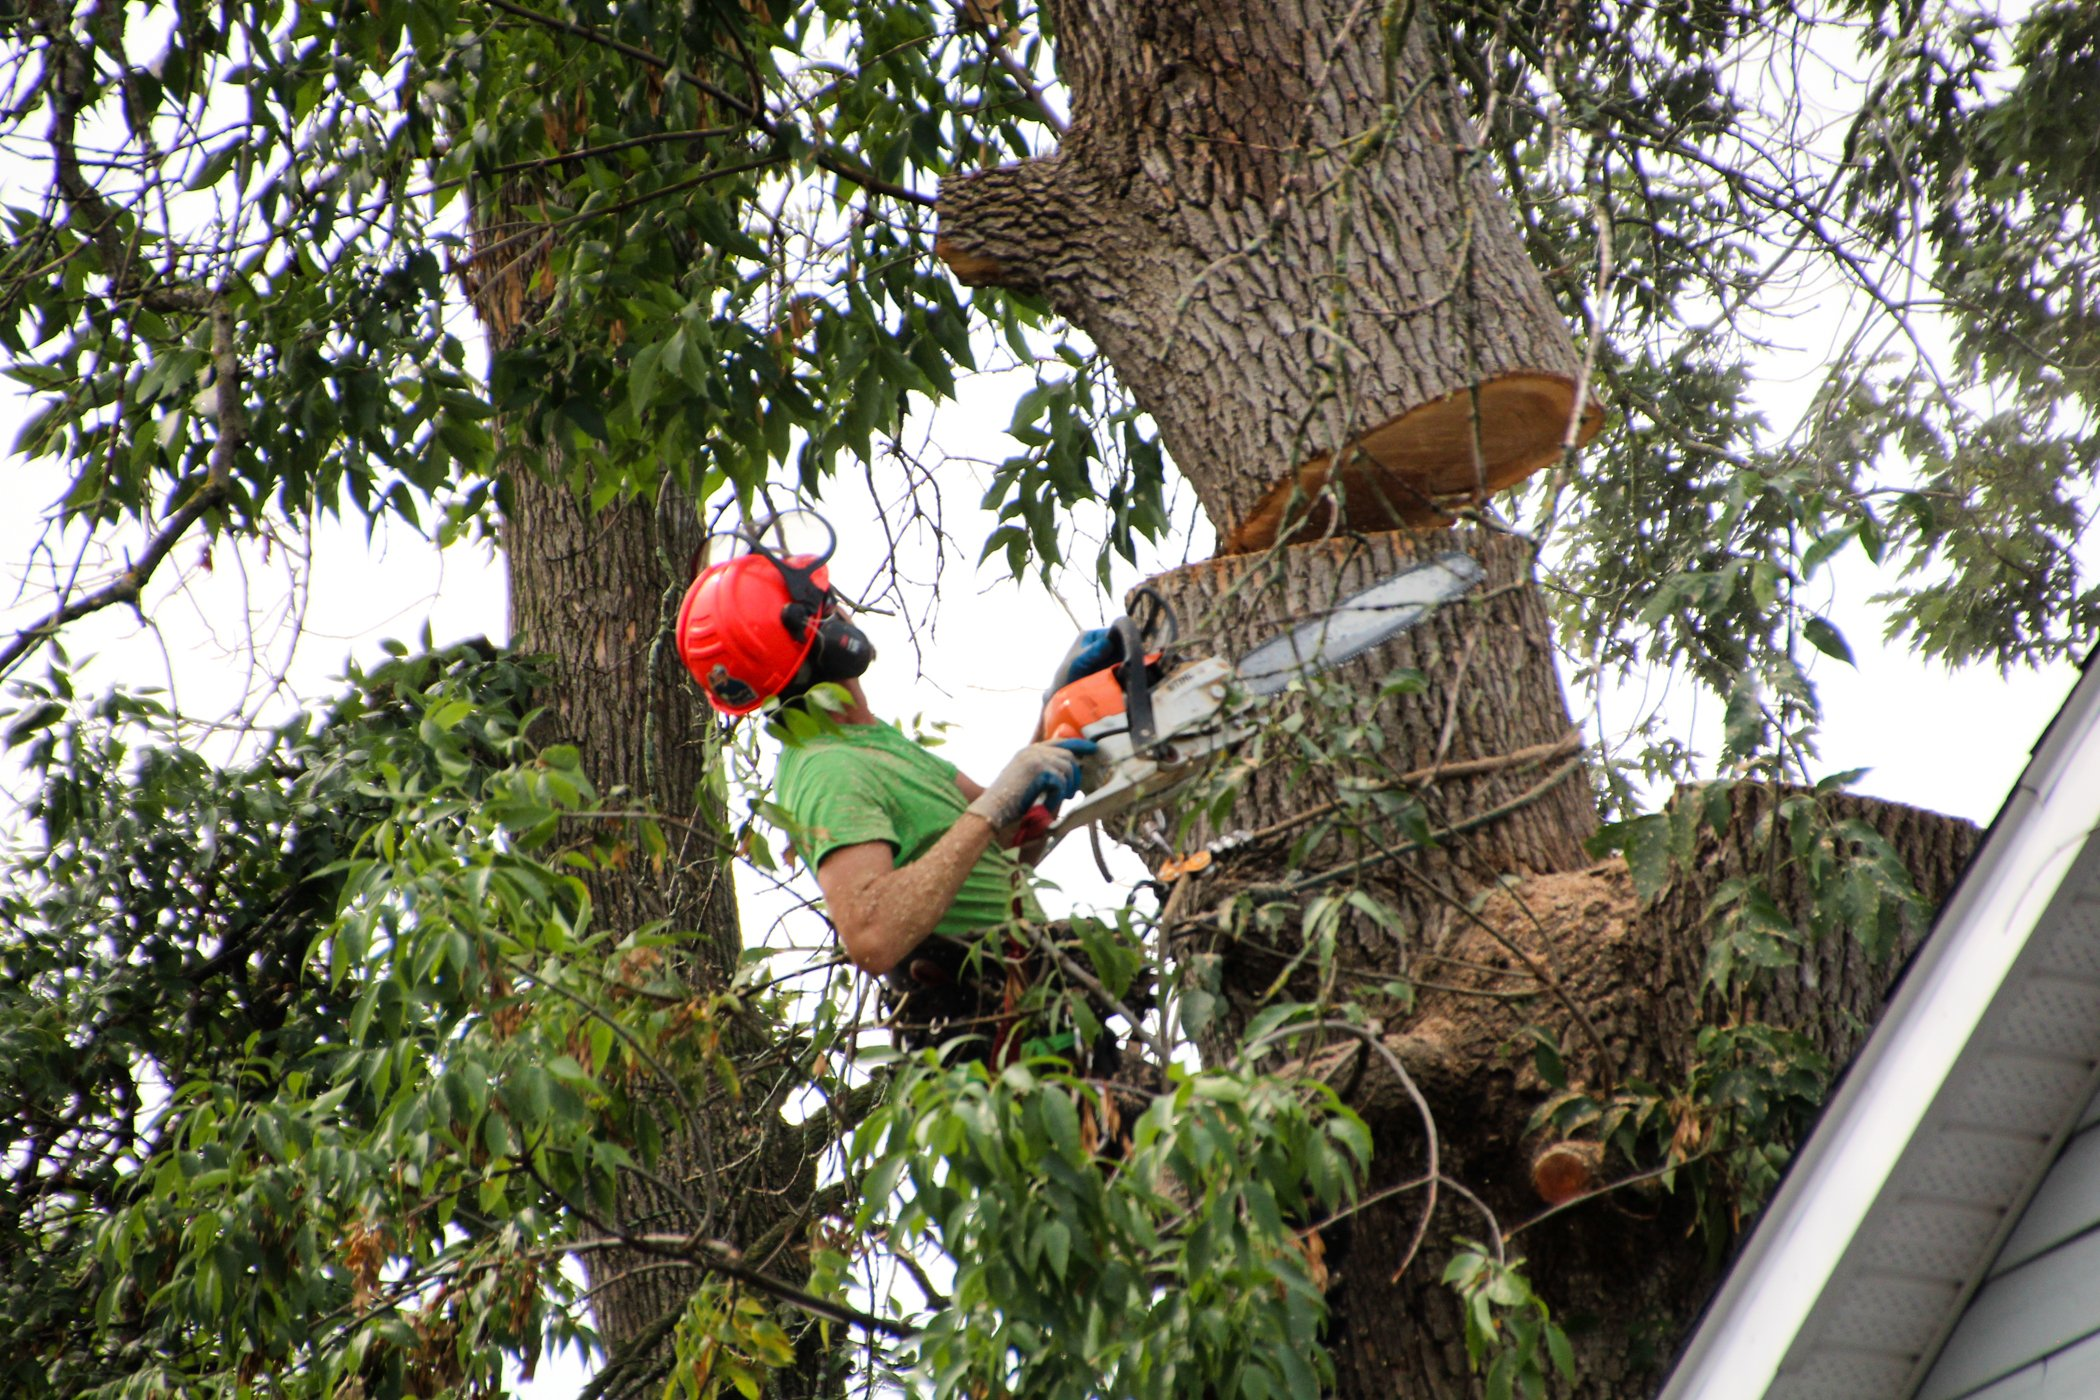 Croft Tree Removal Expert In Tree Cutting Upper Portion Down